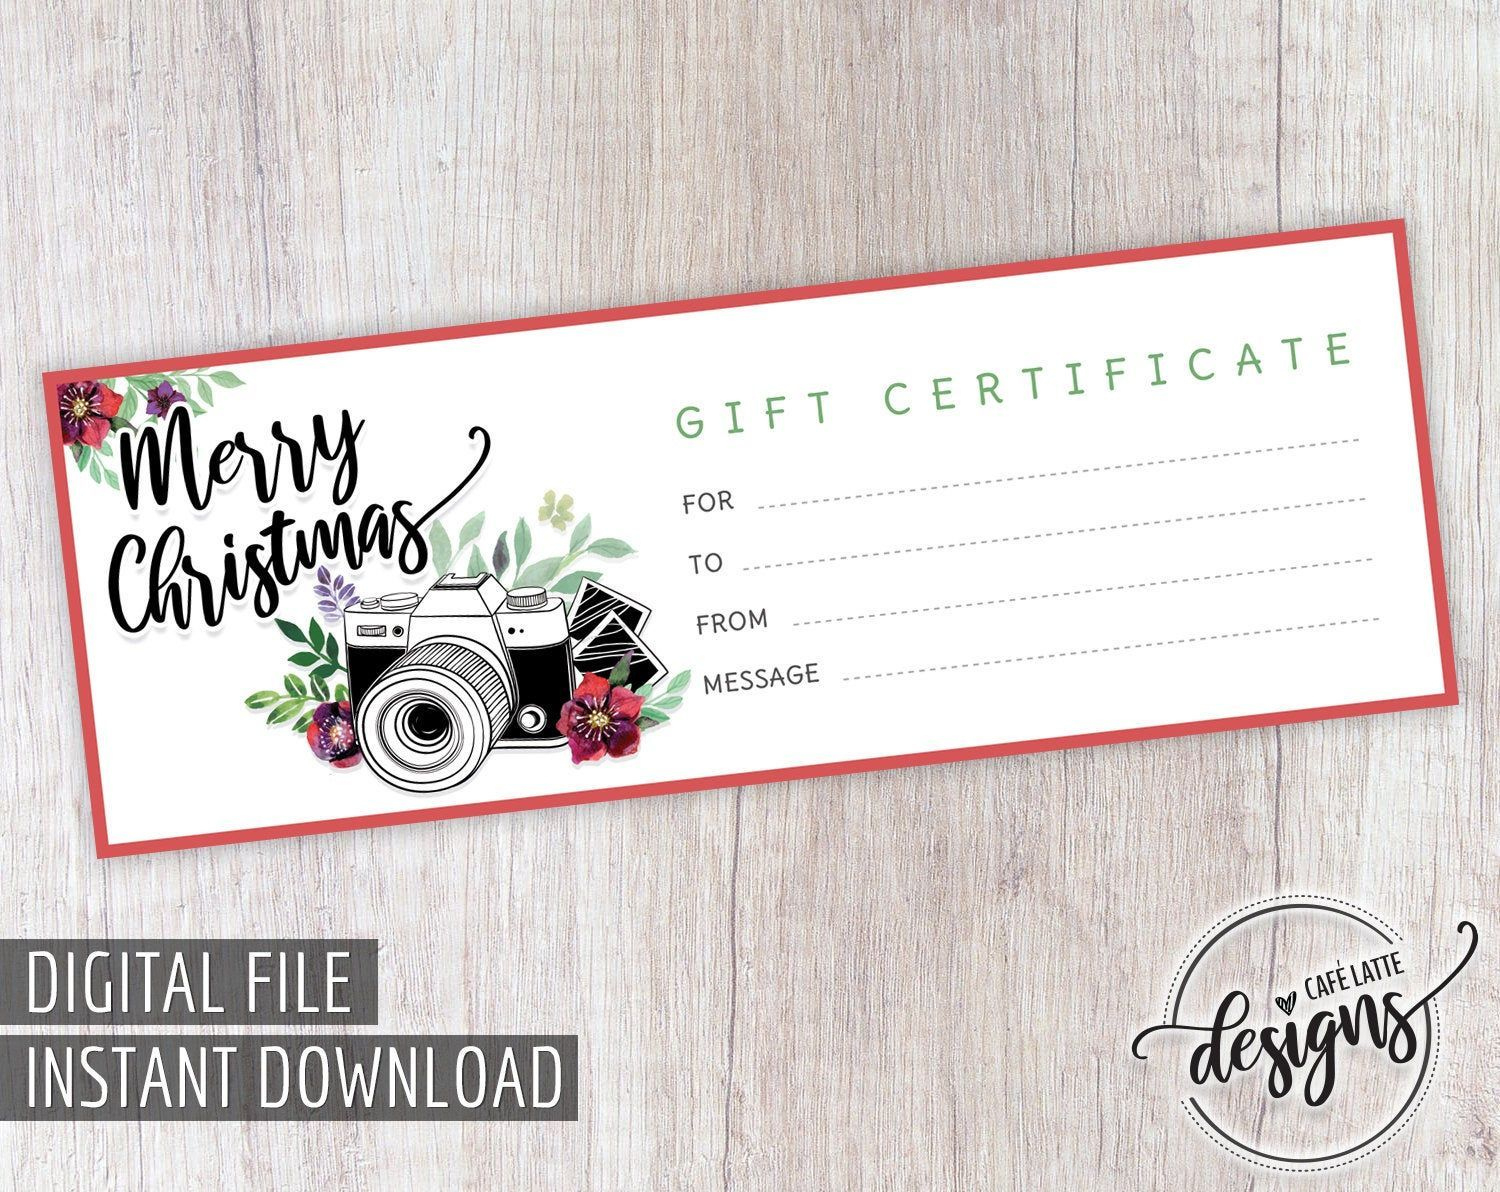 Christmas Gift Certificate Gift Certificate Printable throughout Photoshoot Gift Certificate Template